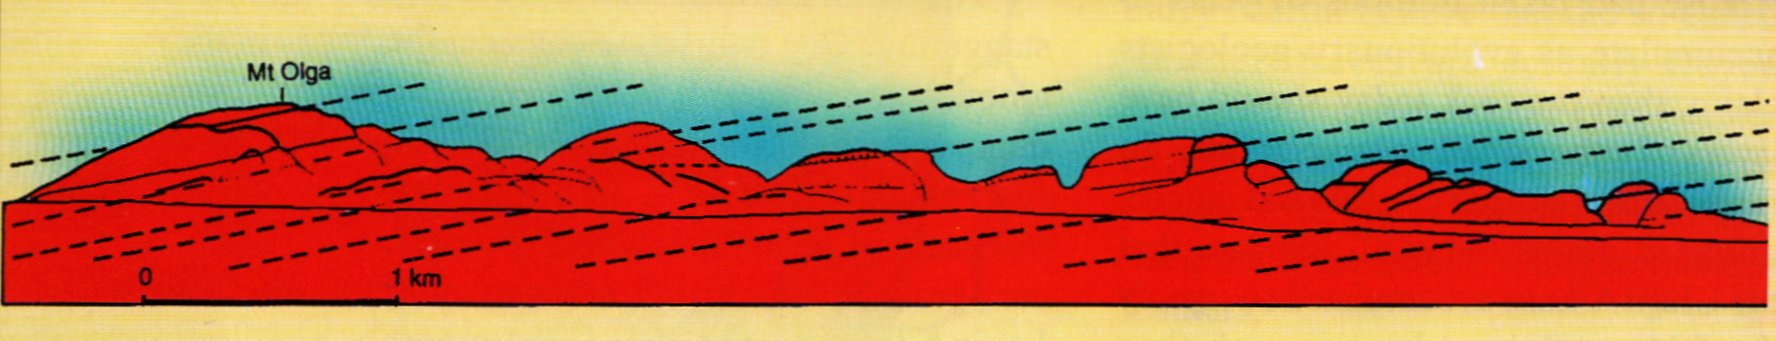 798-olgas-cross-section